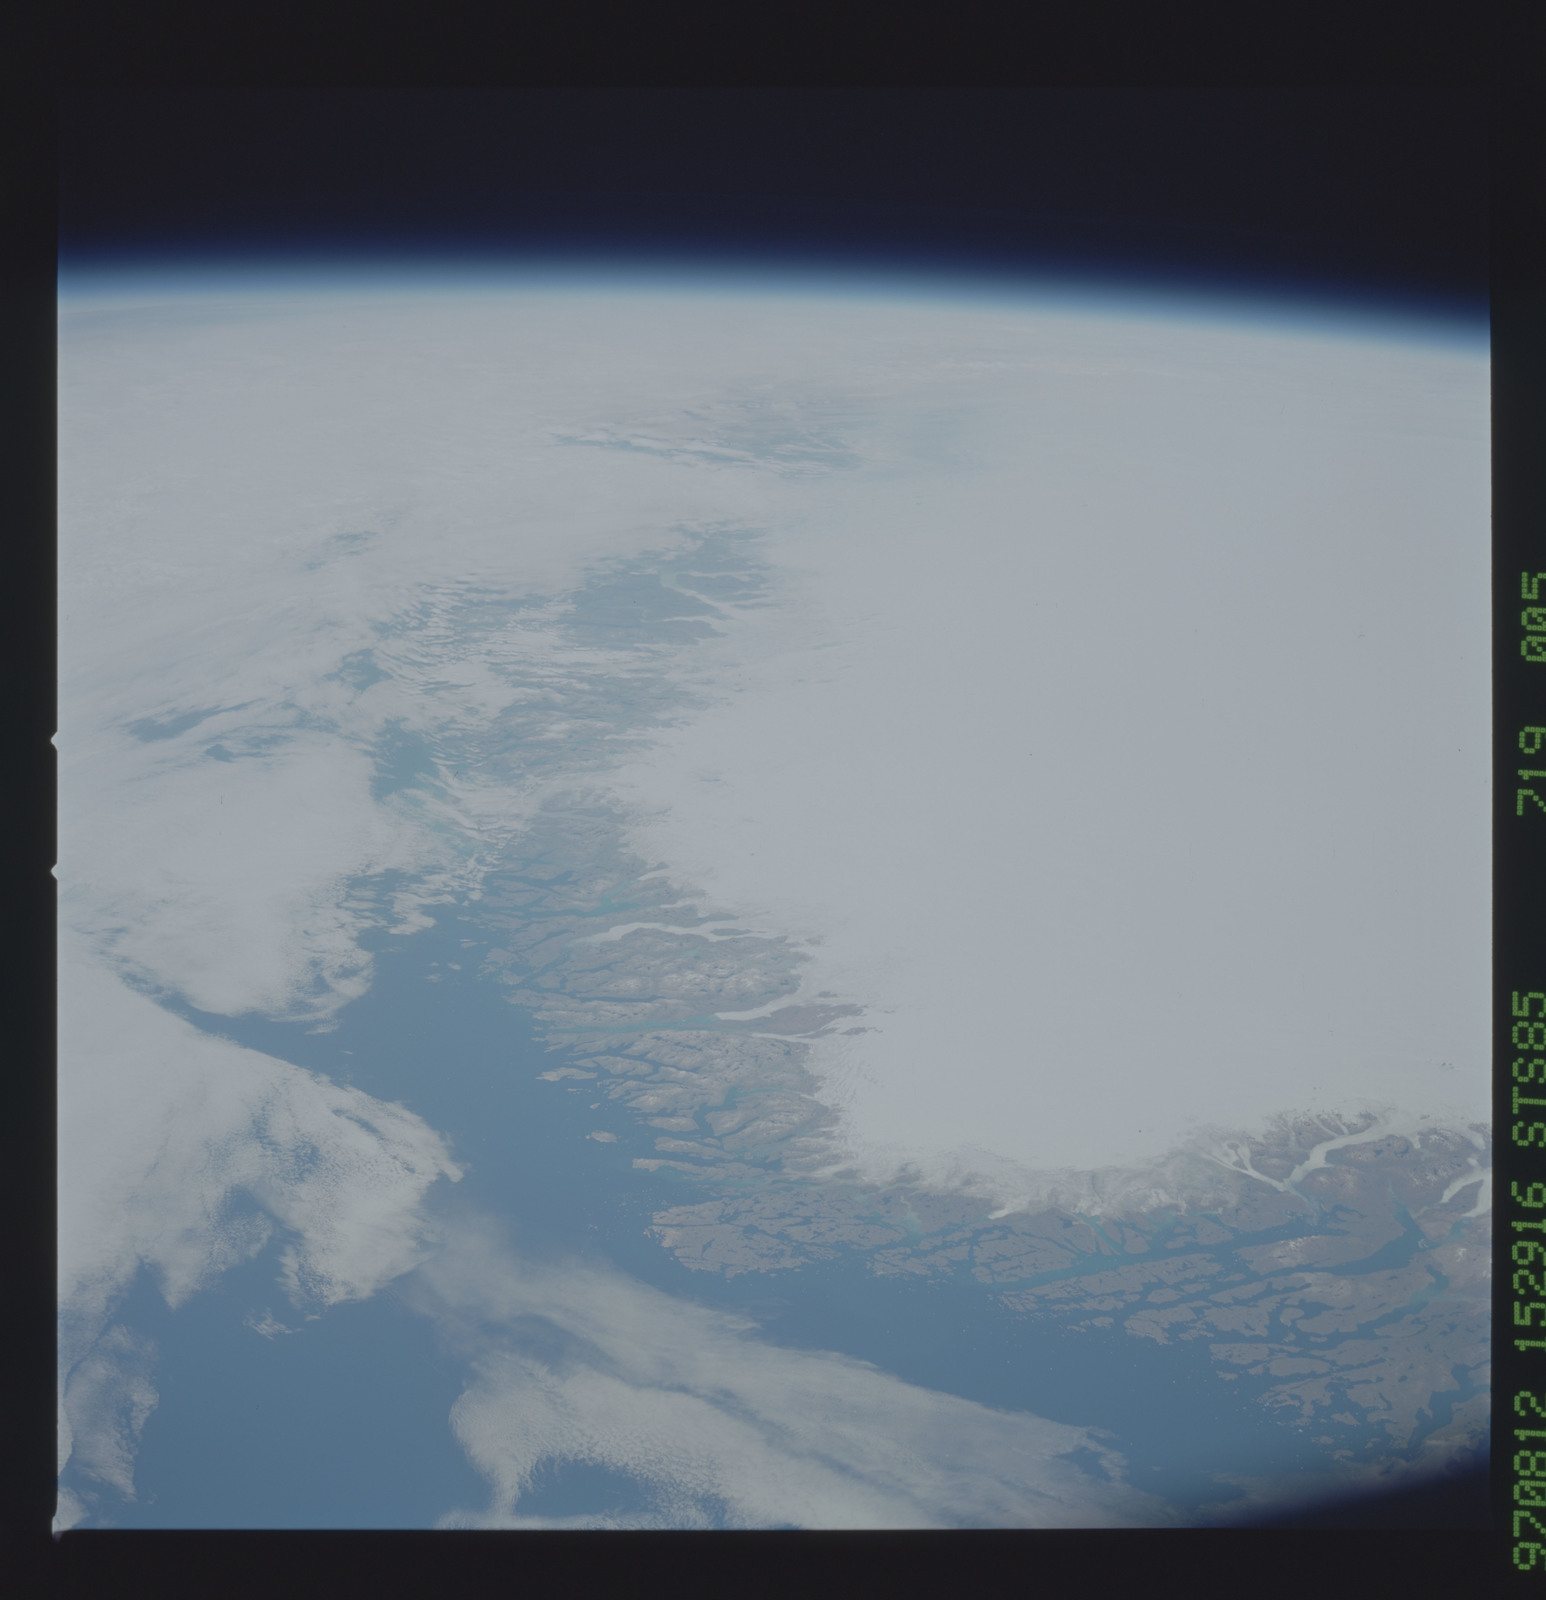 STS085-719-005 - STS-085 - Earth observations taken from orbiter Discovery during STS-85 mission